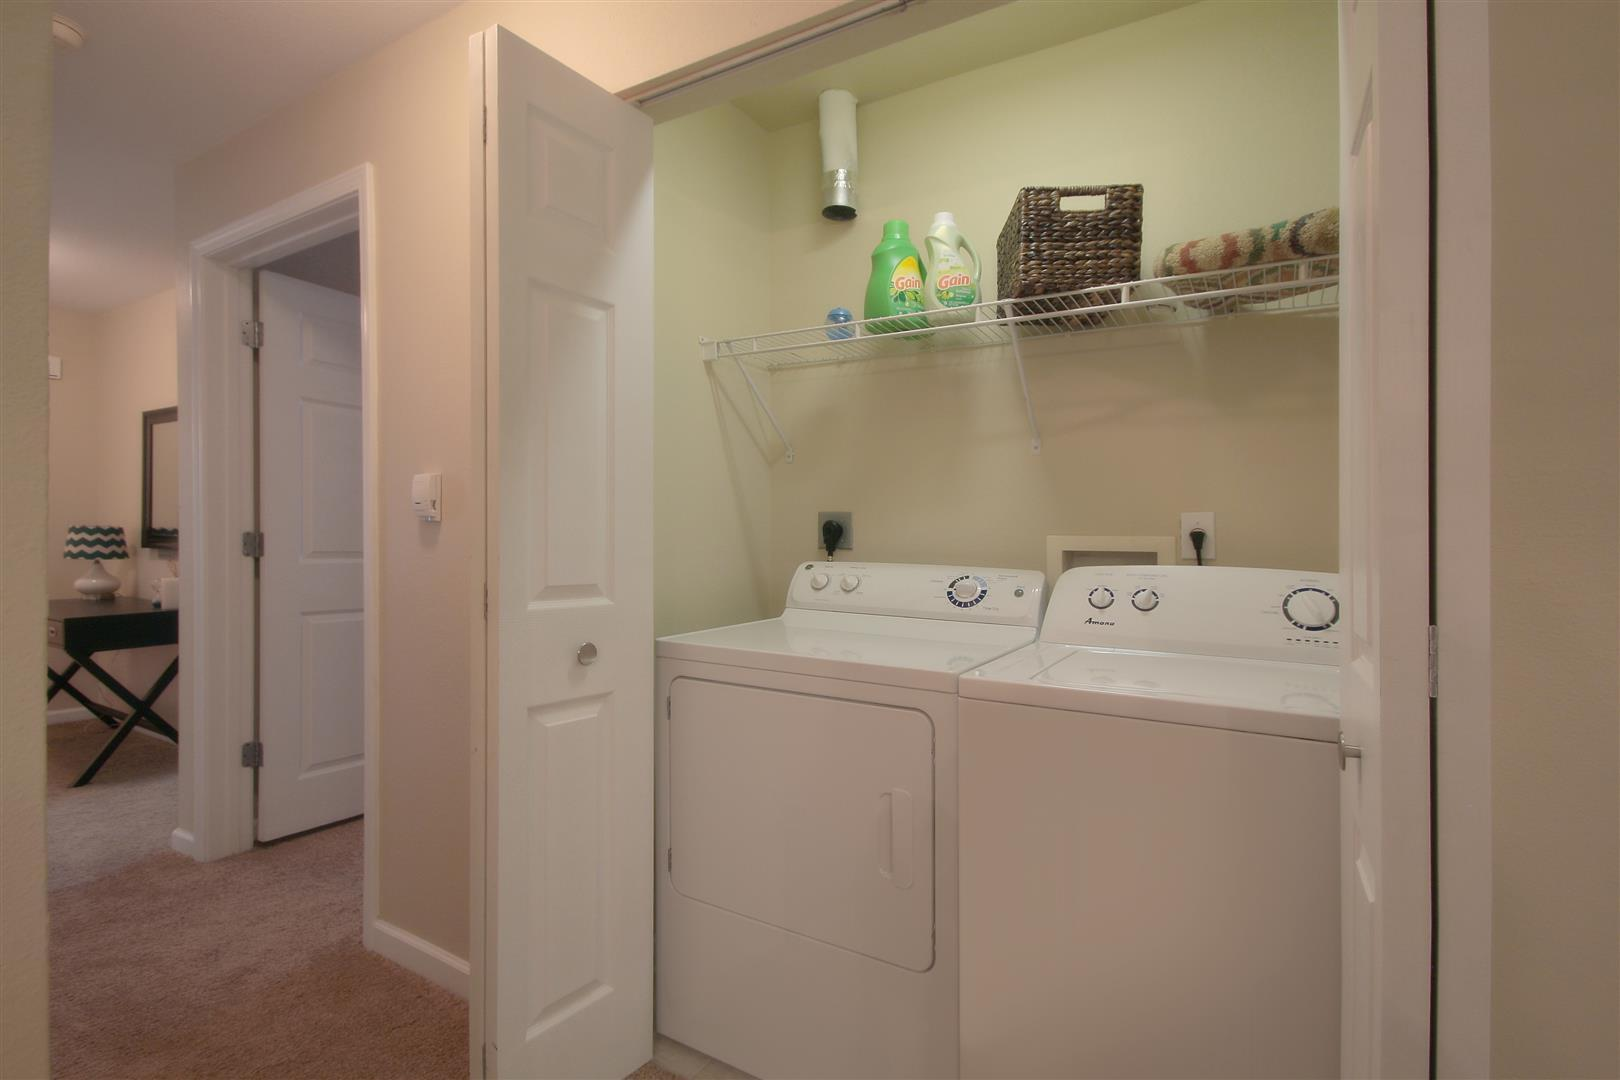 Reserve At Fox River - Yorkville, IL Apartments for rent